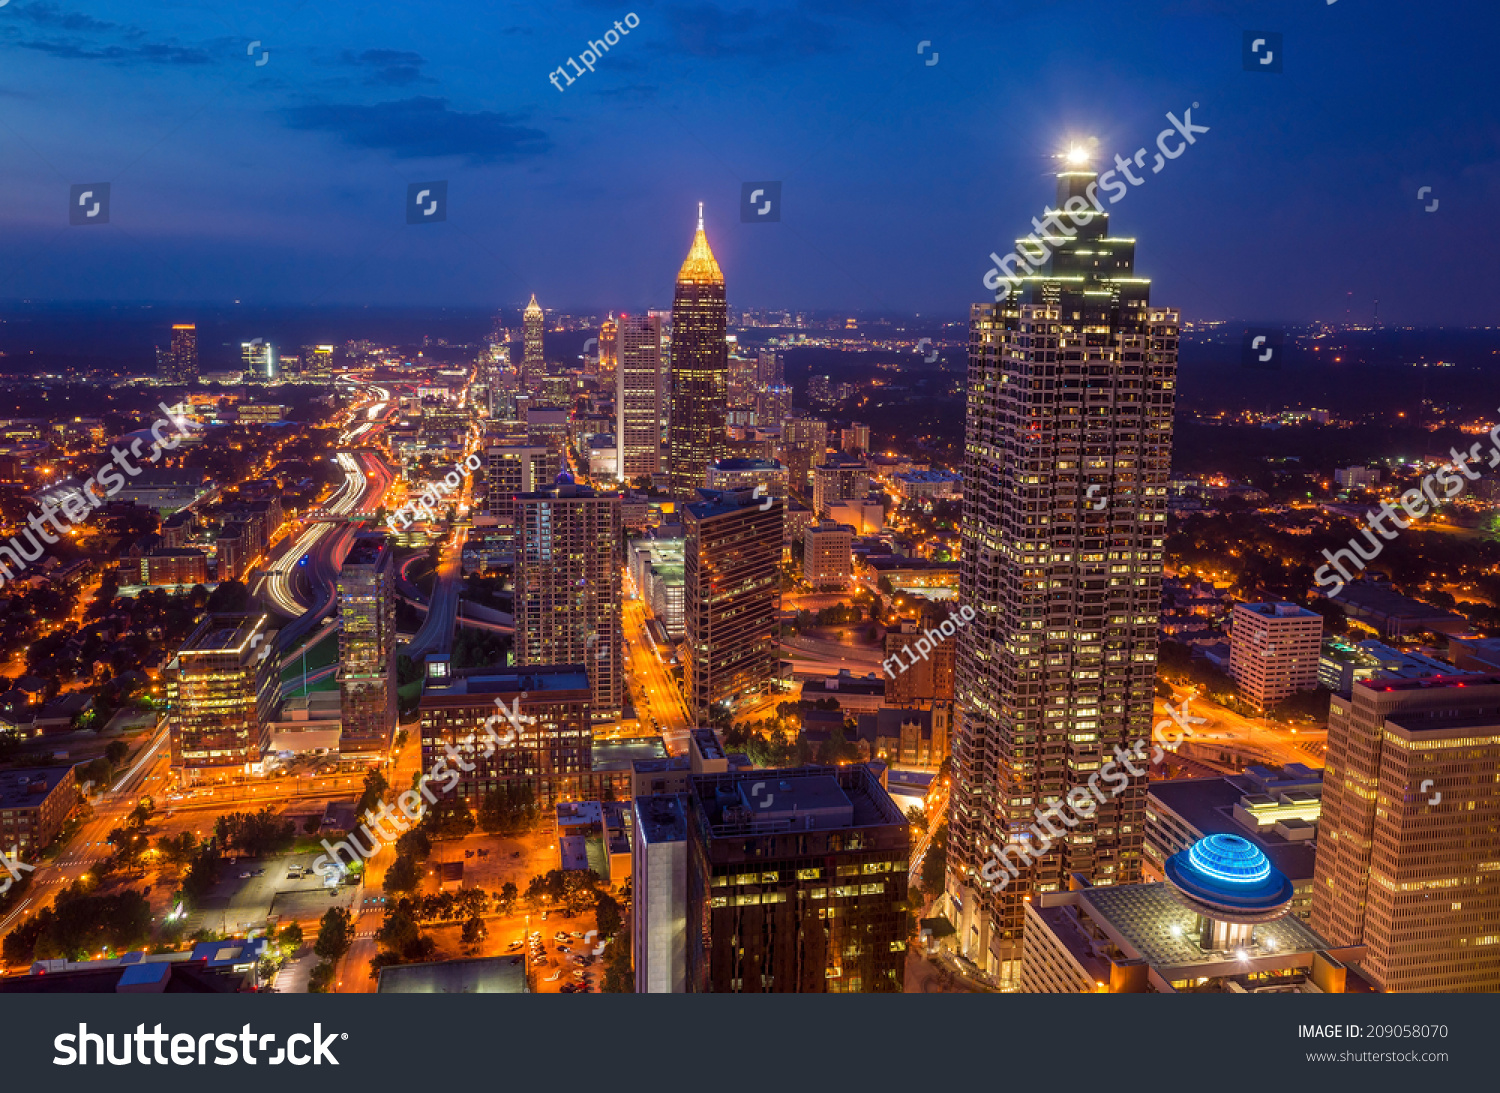 skyline downtown atlanta georgia usa stock photo 209058070 shutterstock. Black Bedroom Furniture Sets. Home Design Ideas